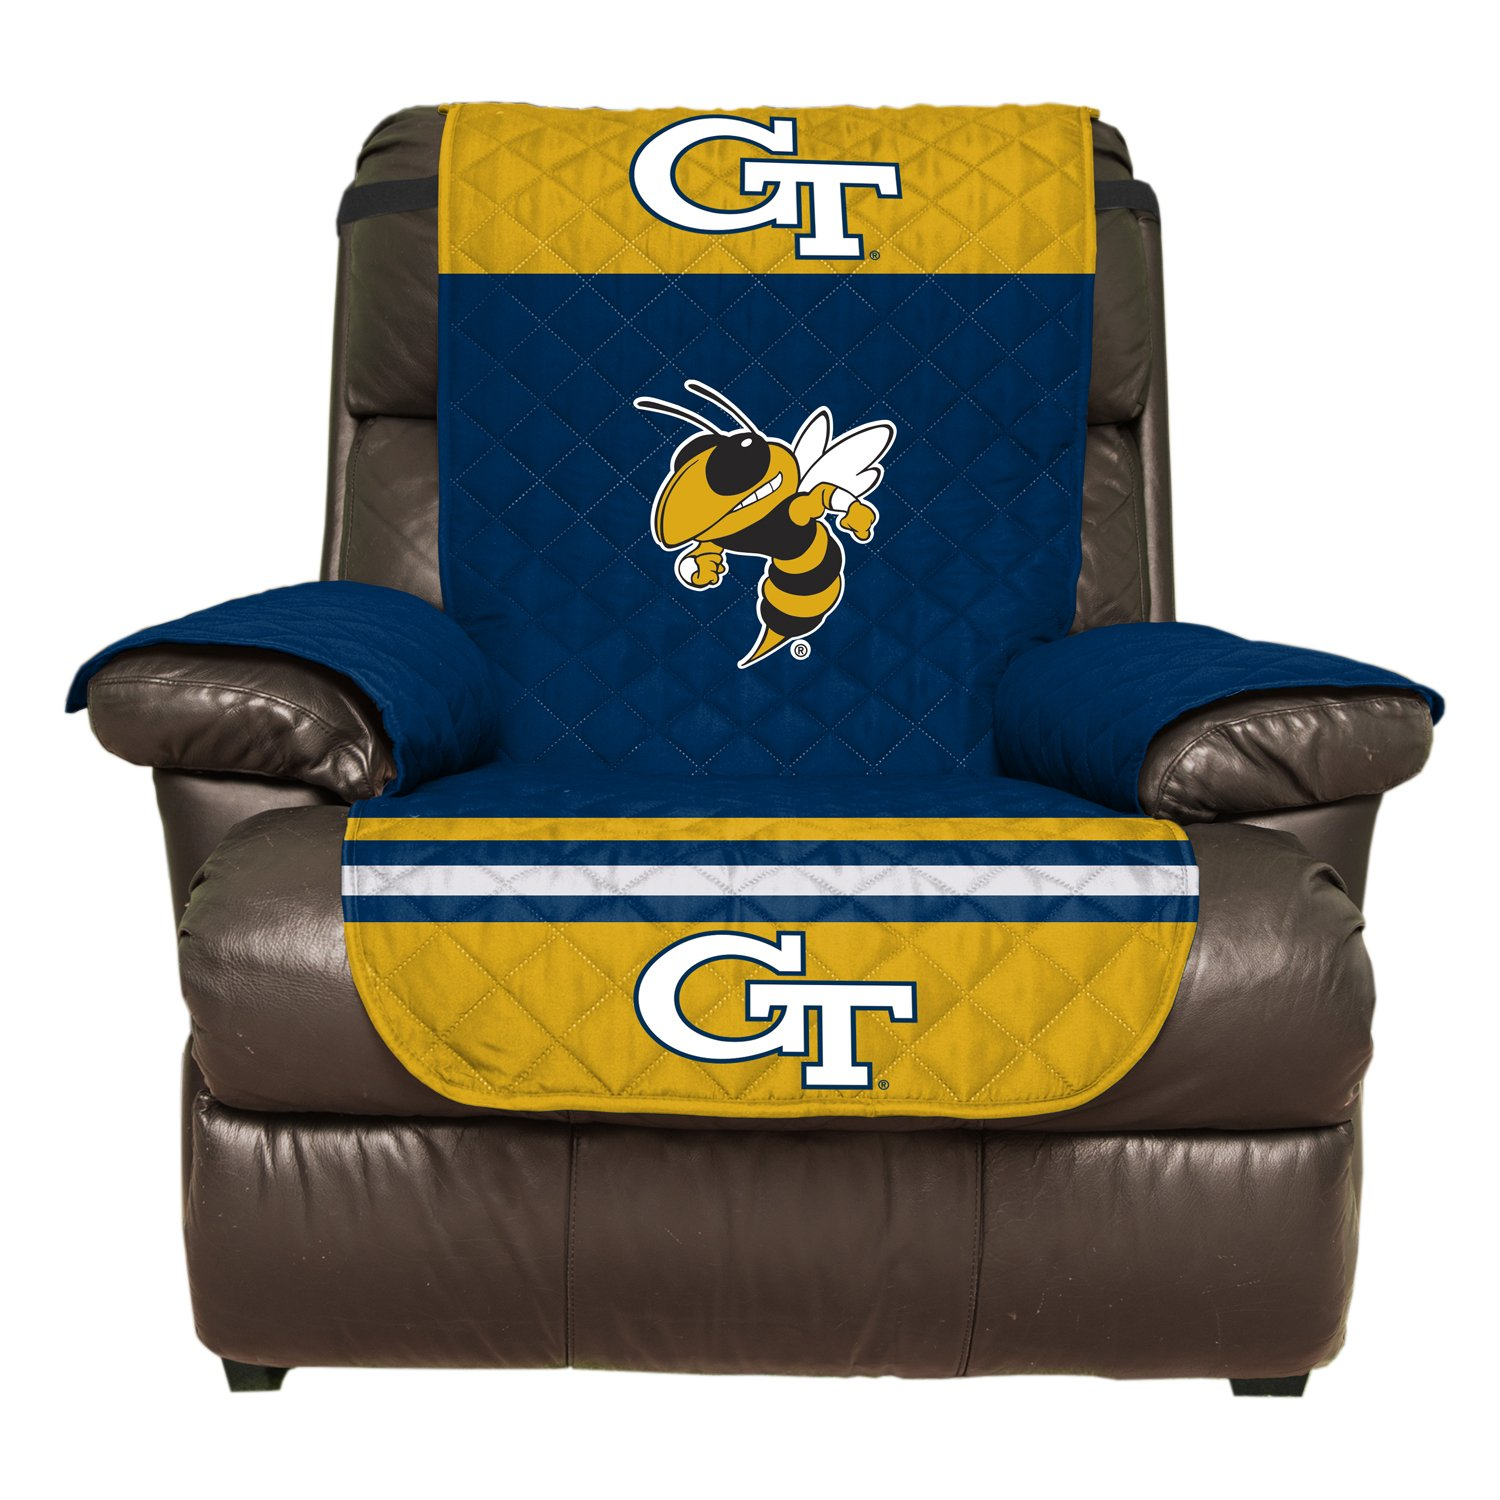 Reversible Couch Cover - College Team Sofa Slipcover Set / Furniture Protector - NCAA Officially Licensed (Recliner, Georgia Tech Yellow Jackets)